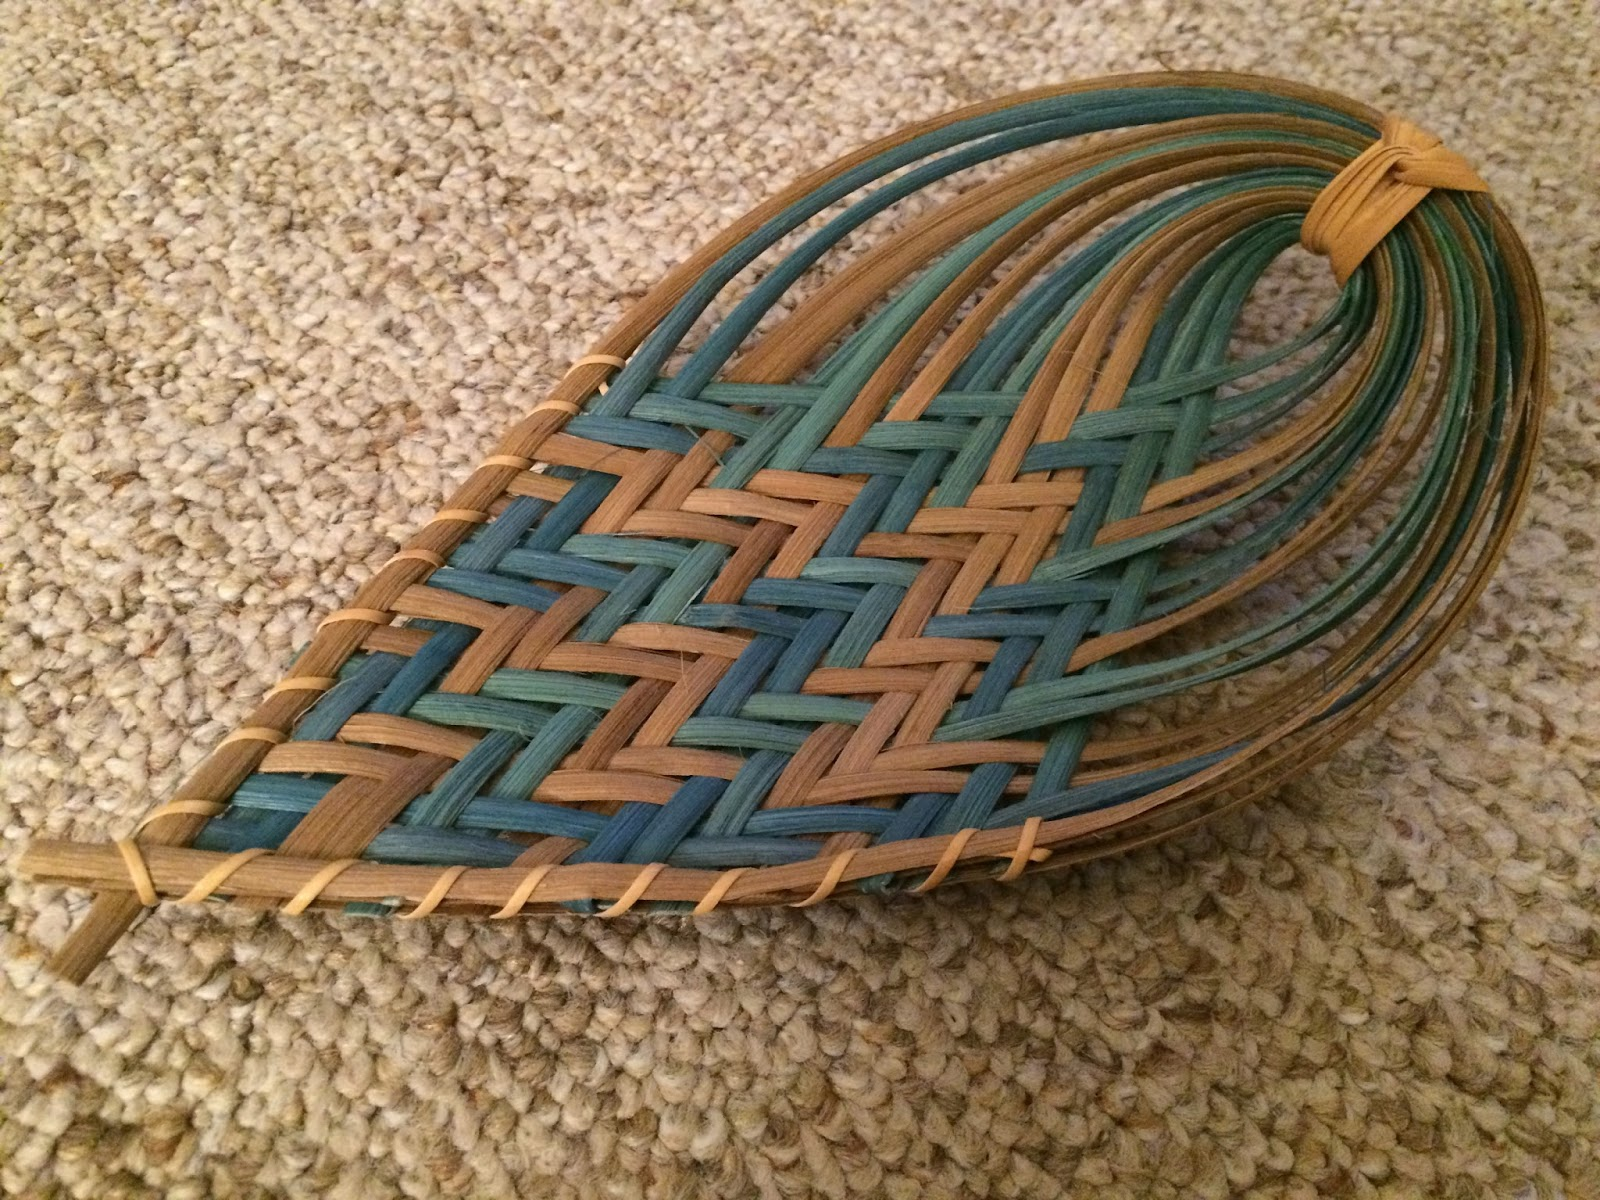 Basket Weaving With Leaves : Baskets weaving with flo